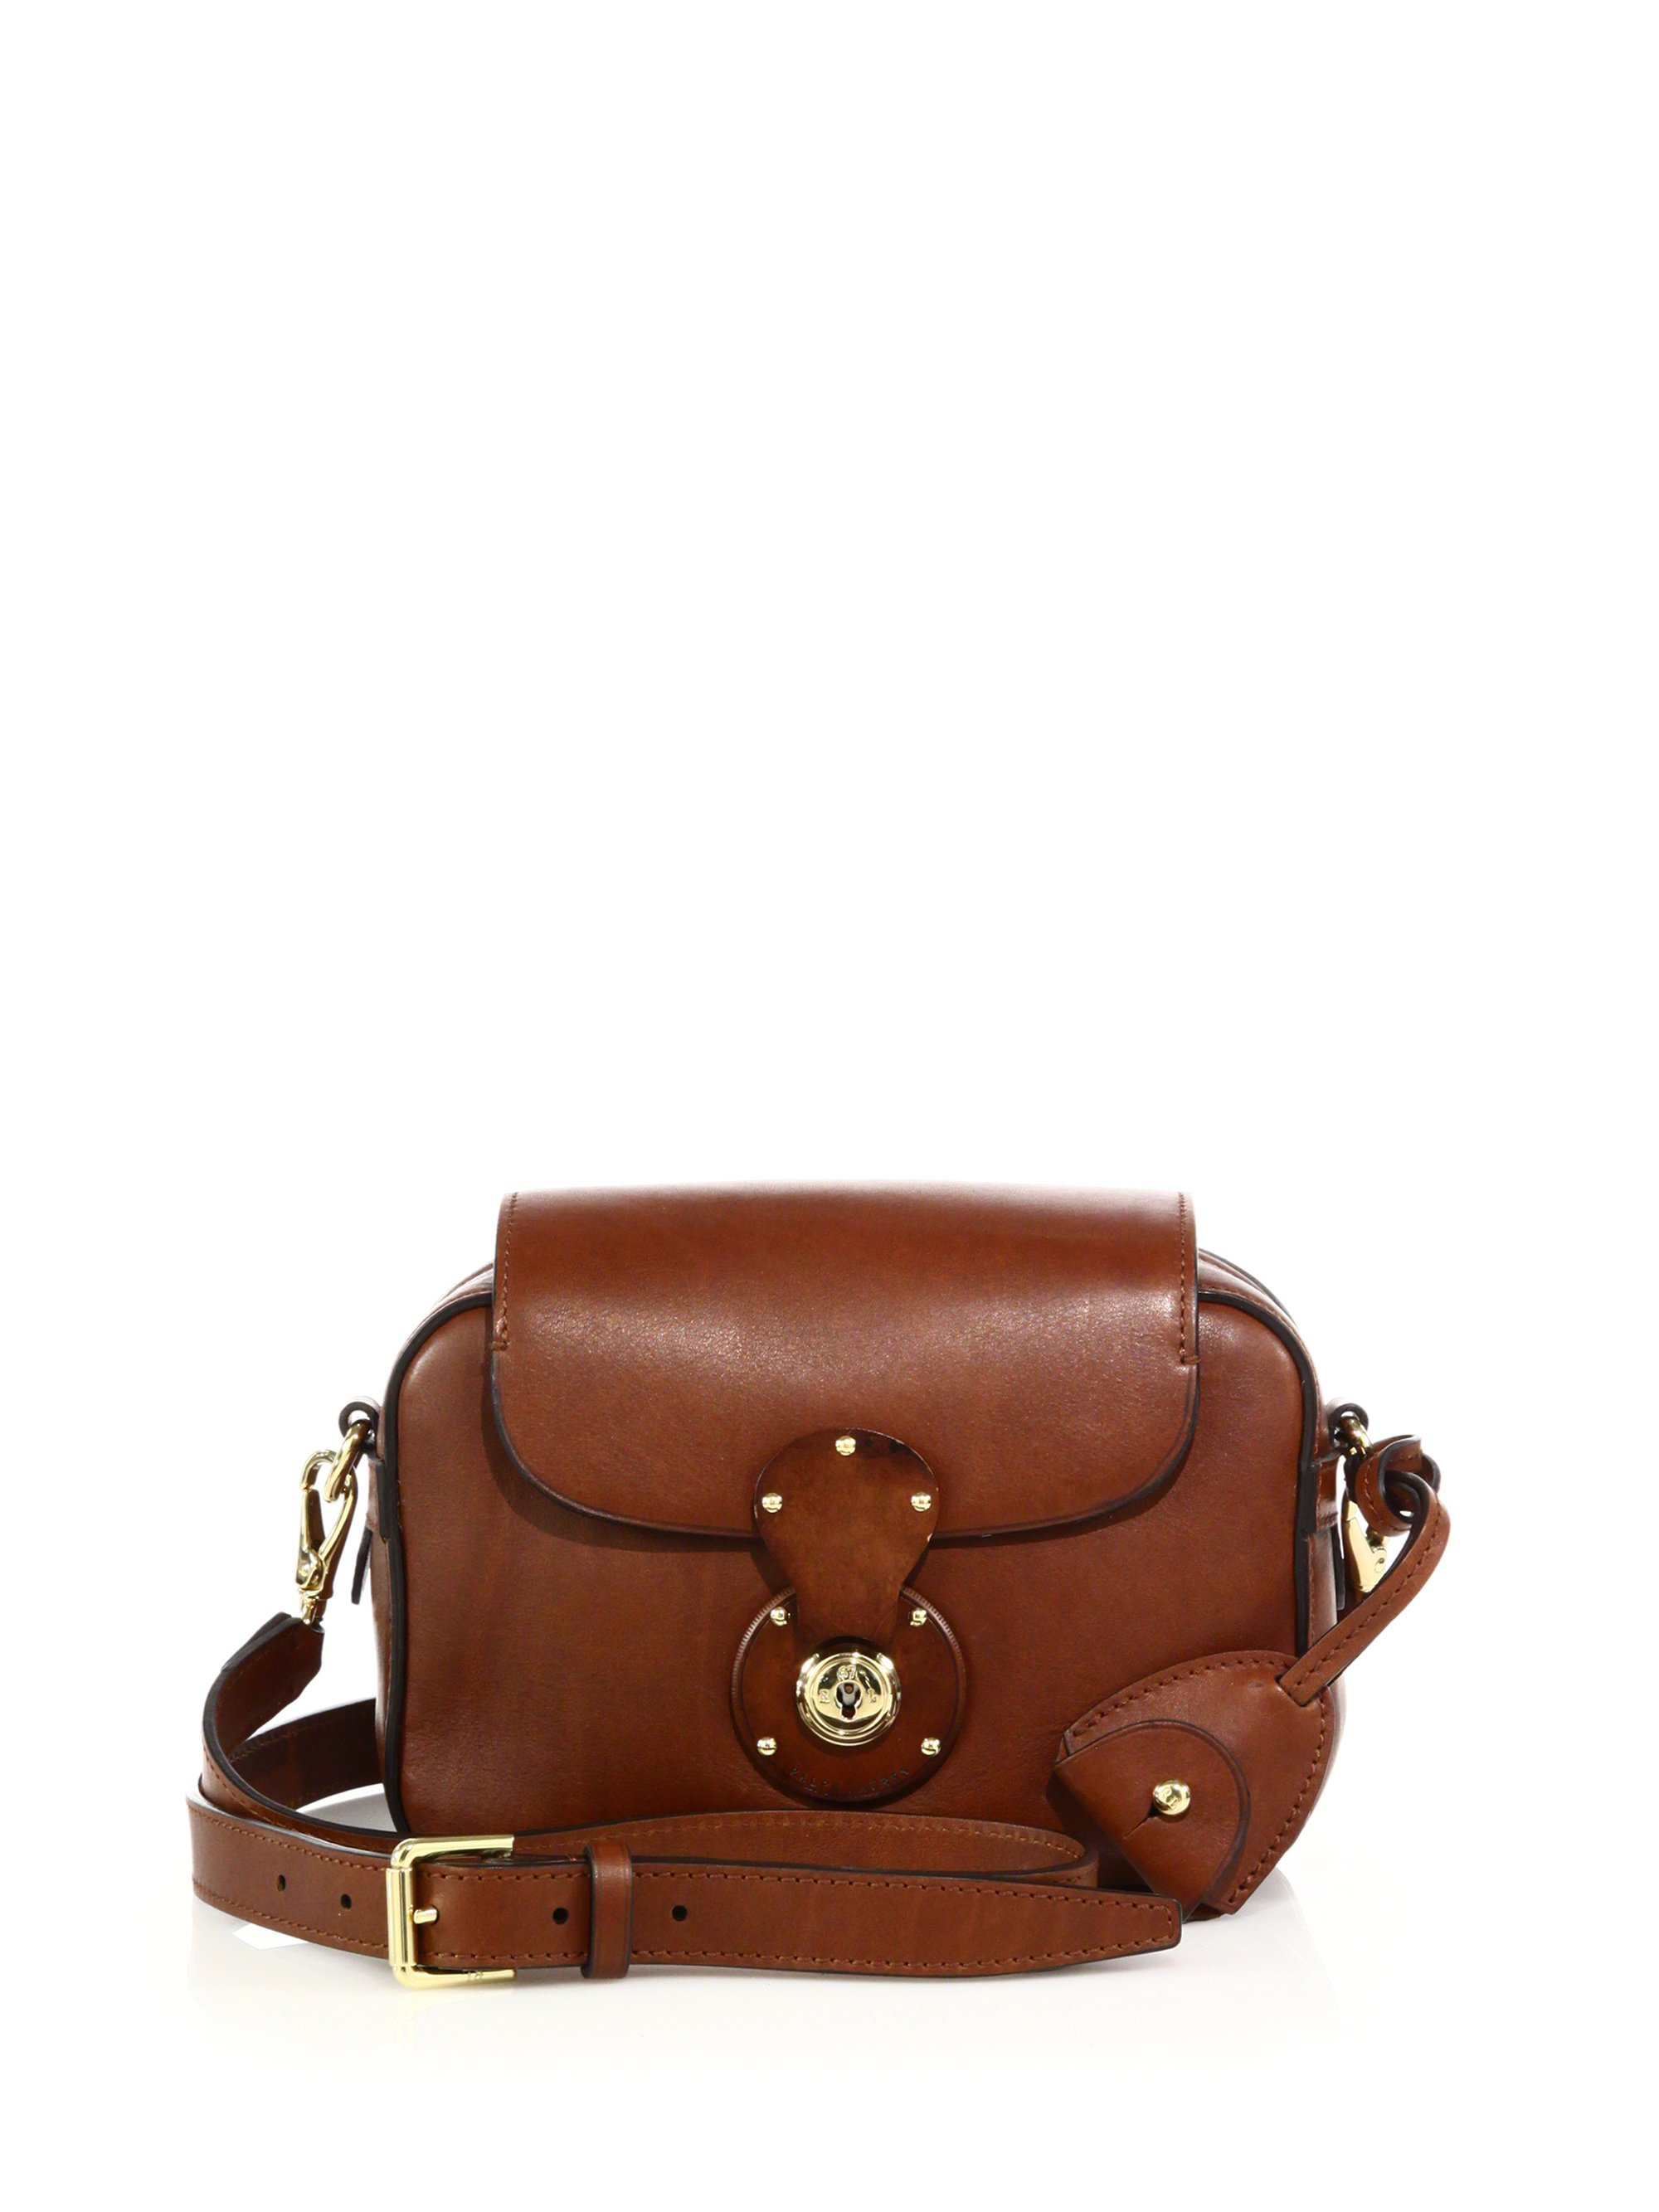 Lyst - Ralph Lauren Ricky Small Leather Zip Crossbody Bag in Brown d0e1f54c8e374